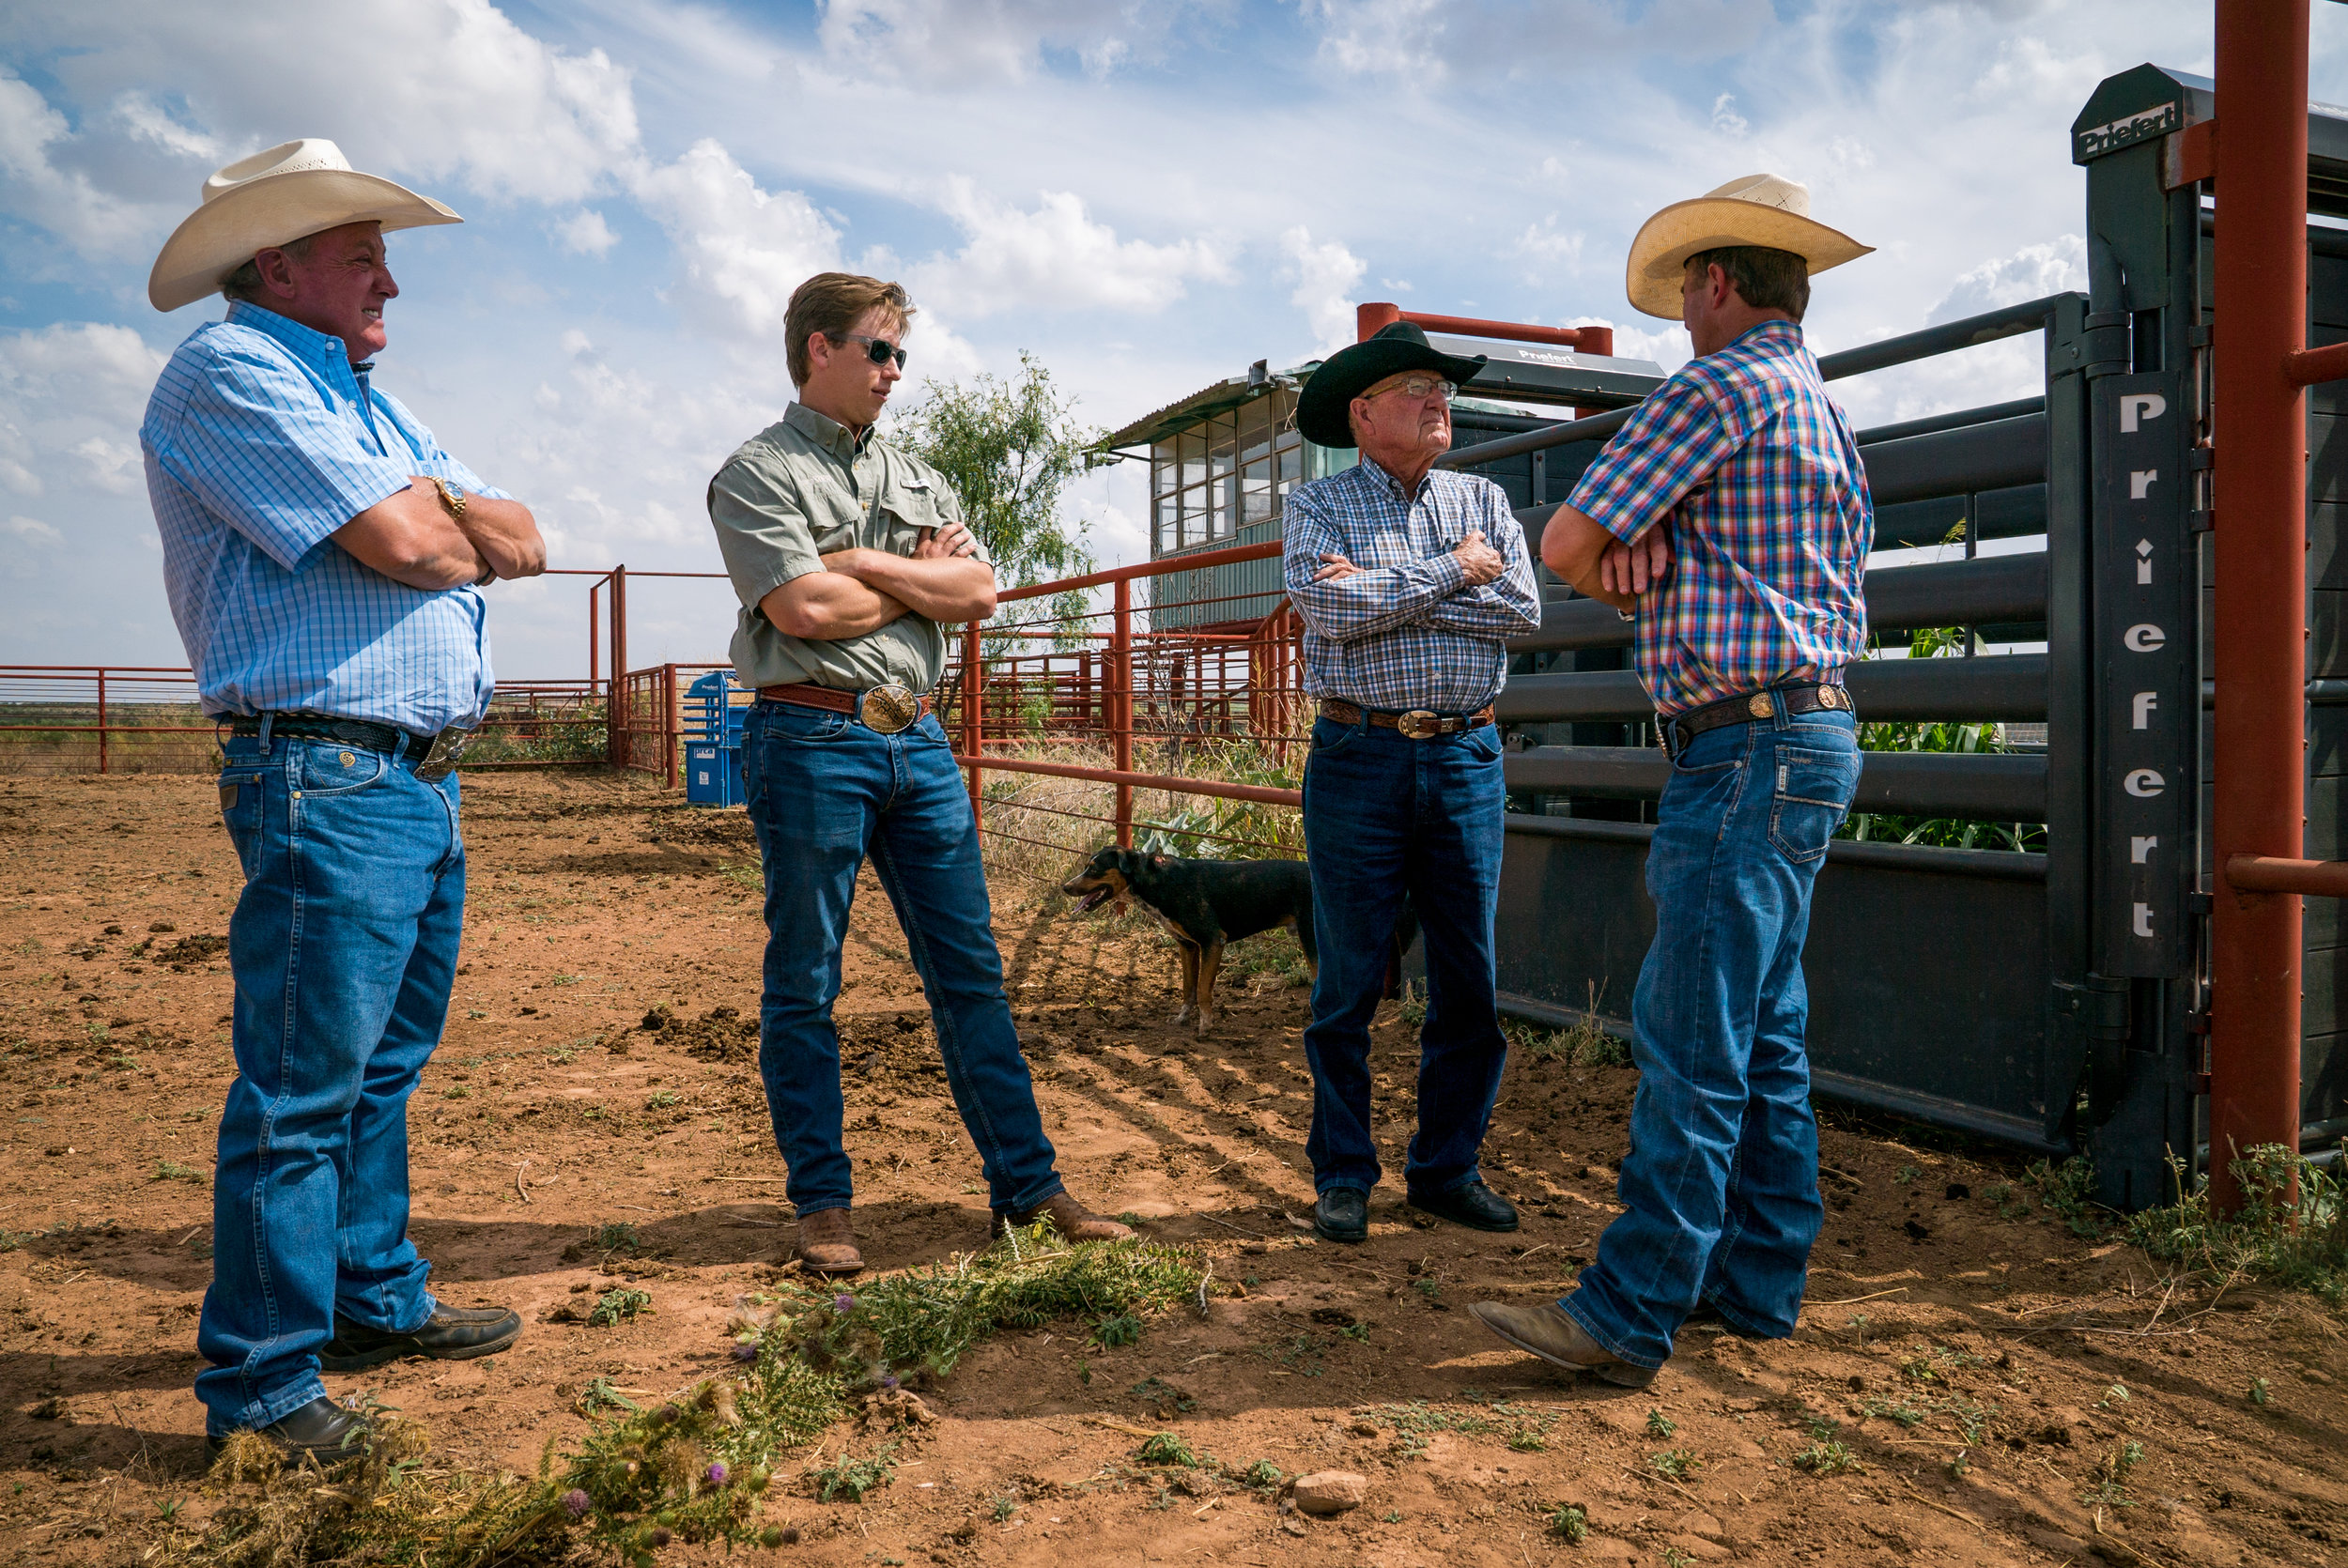 Tom Baker, James Trawick, Ralph Miller and Tuff Hedeman discussing location options for upcoming feature film  Tough Draw